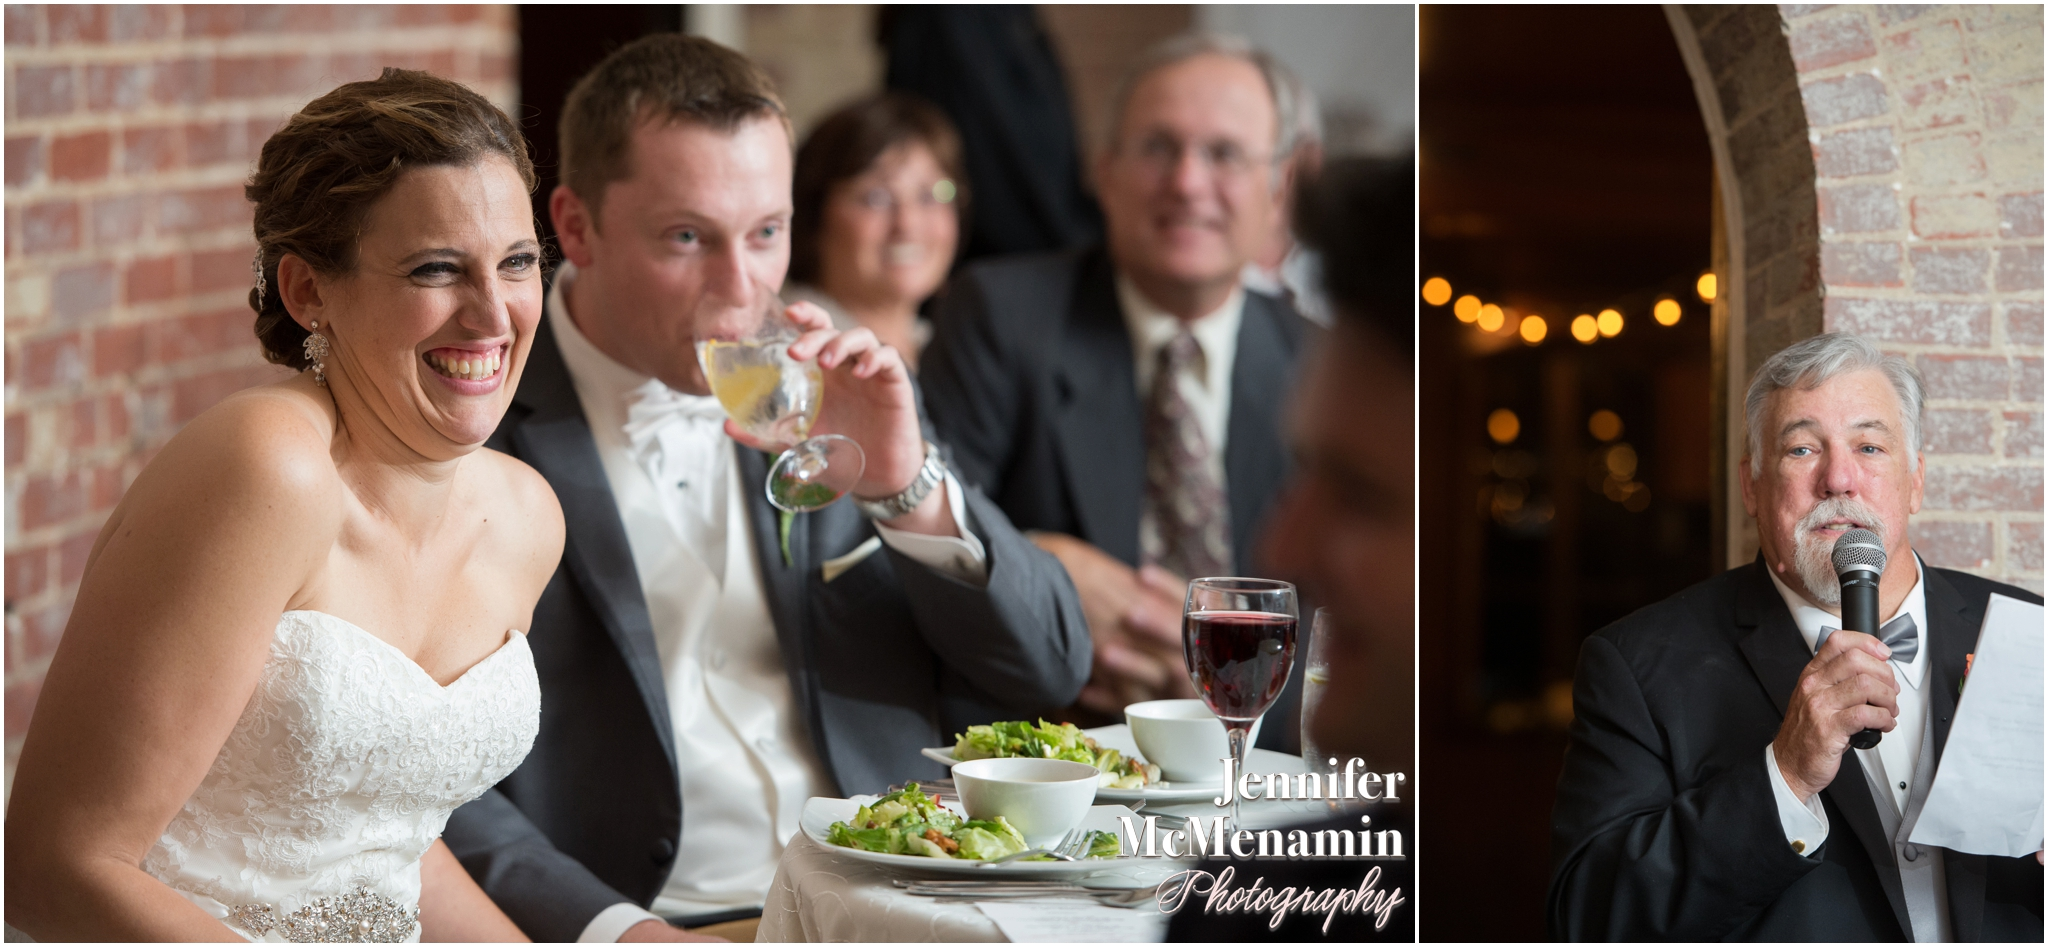 077-HenningMiller_02732-0587_JenniferMcMenaminPhotography_Evergreen-Museum-And-Carriage-House_Evergreen-wedding_Baltimore-wedding-photographer_Baltimore-wedding-photography